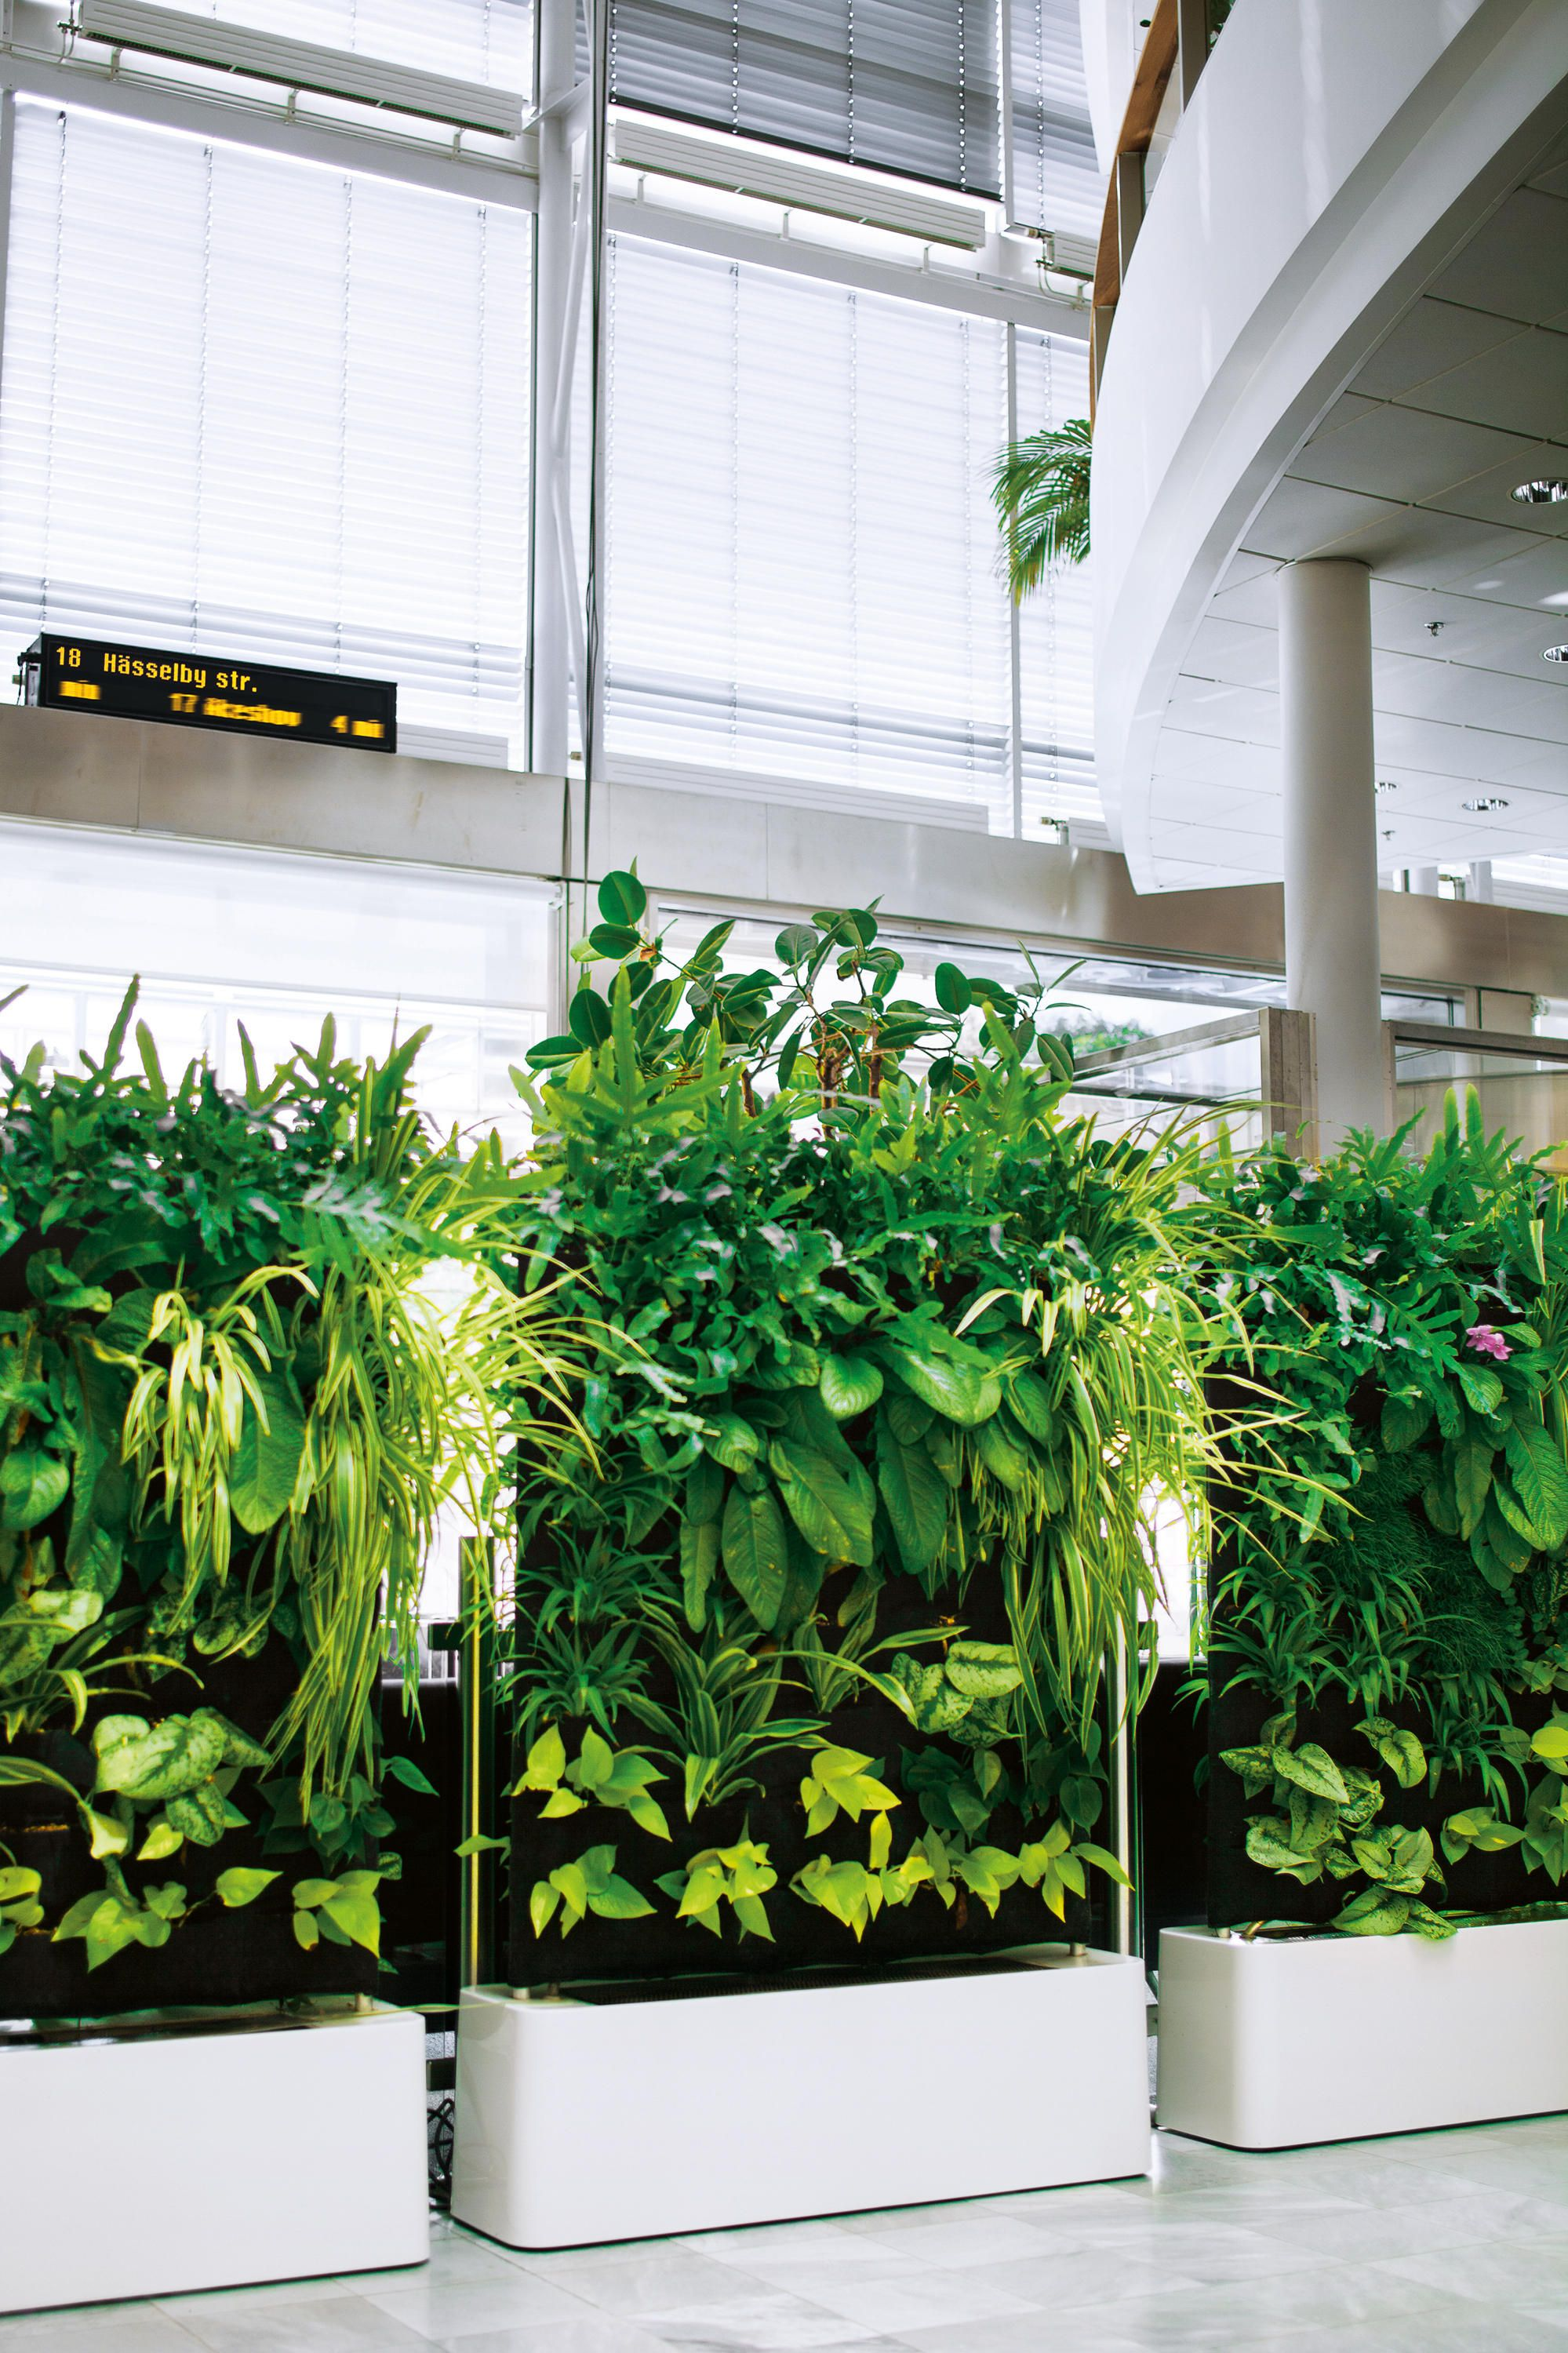 Herbal architecture divider space dividers and interior plants